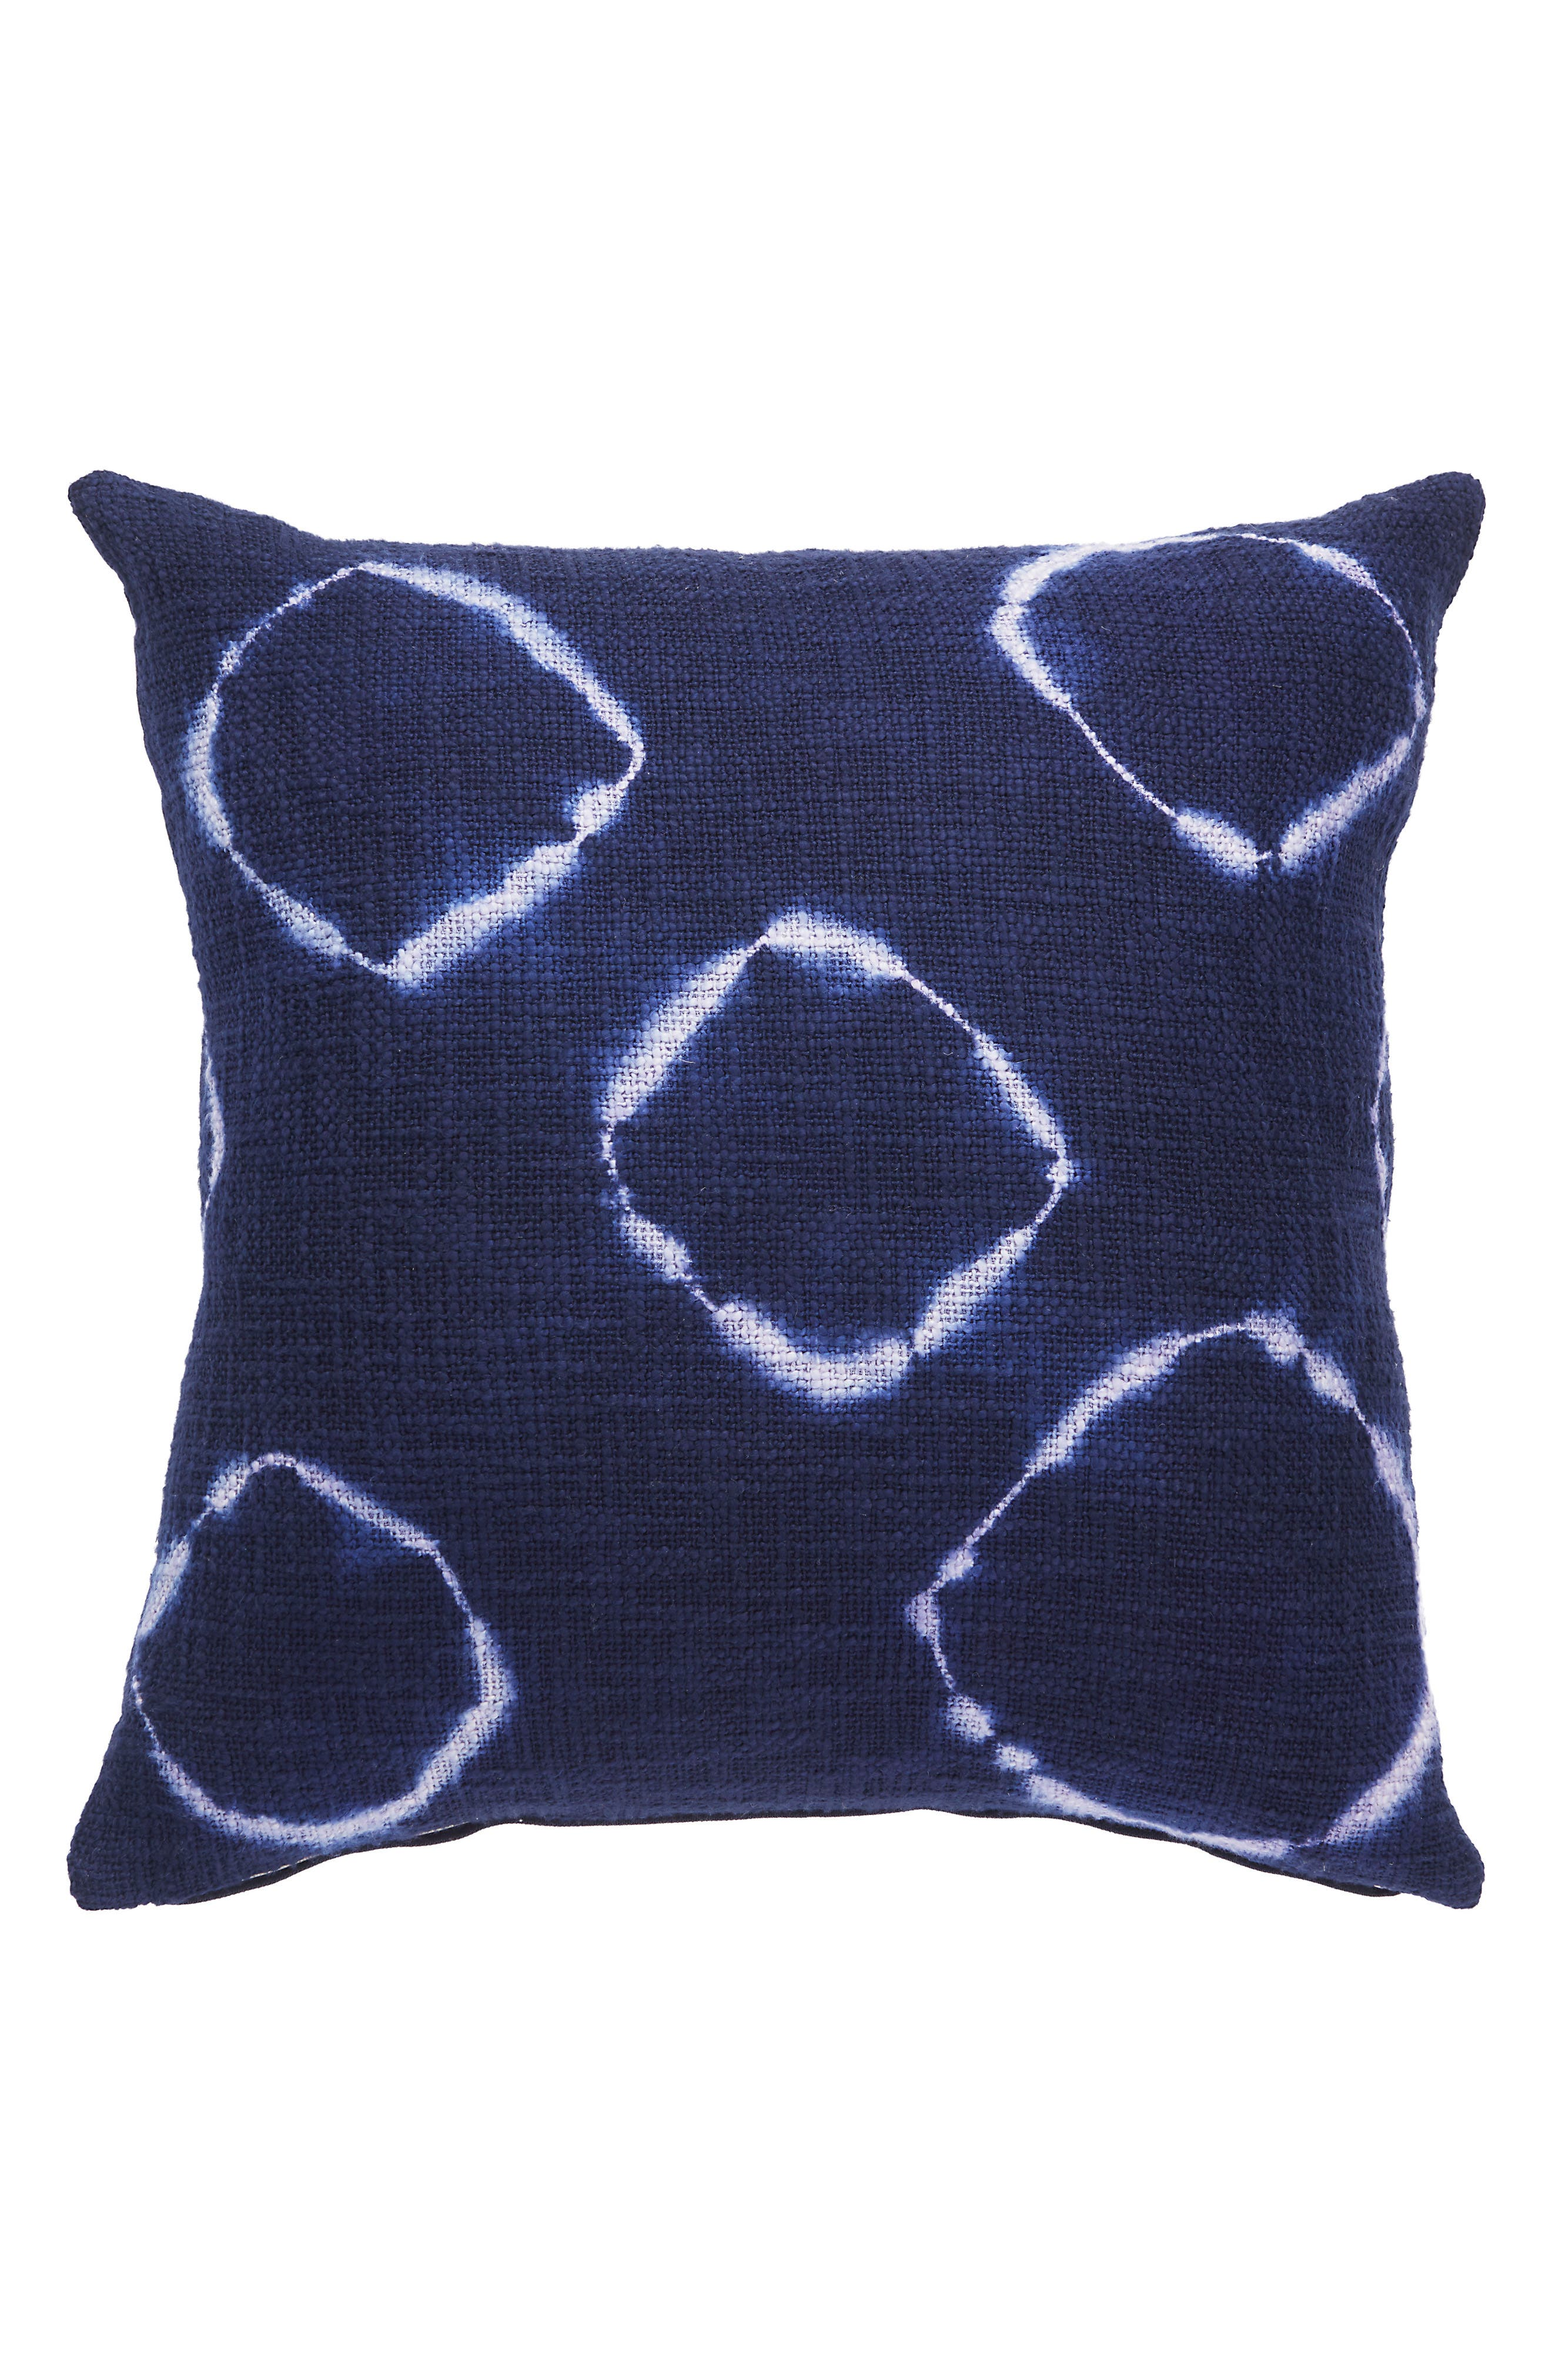 Alternate Image 1 Selected - Jaipur Medieval Blue Accent Pillow